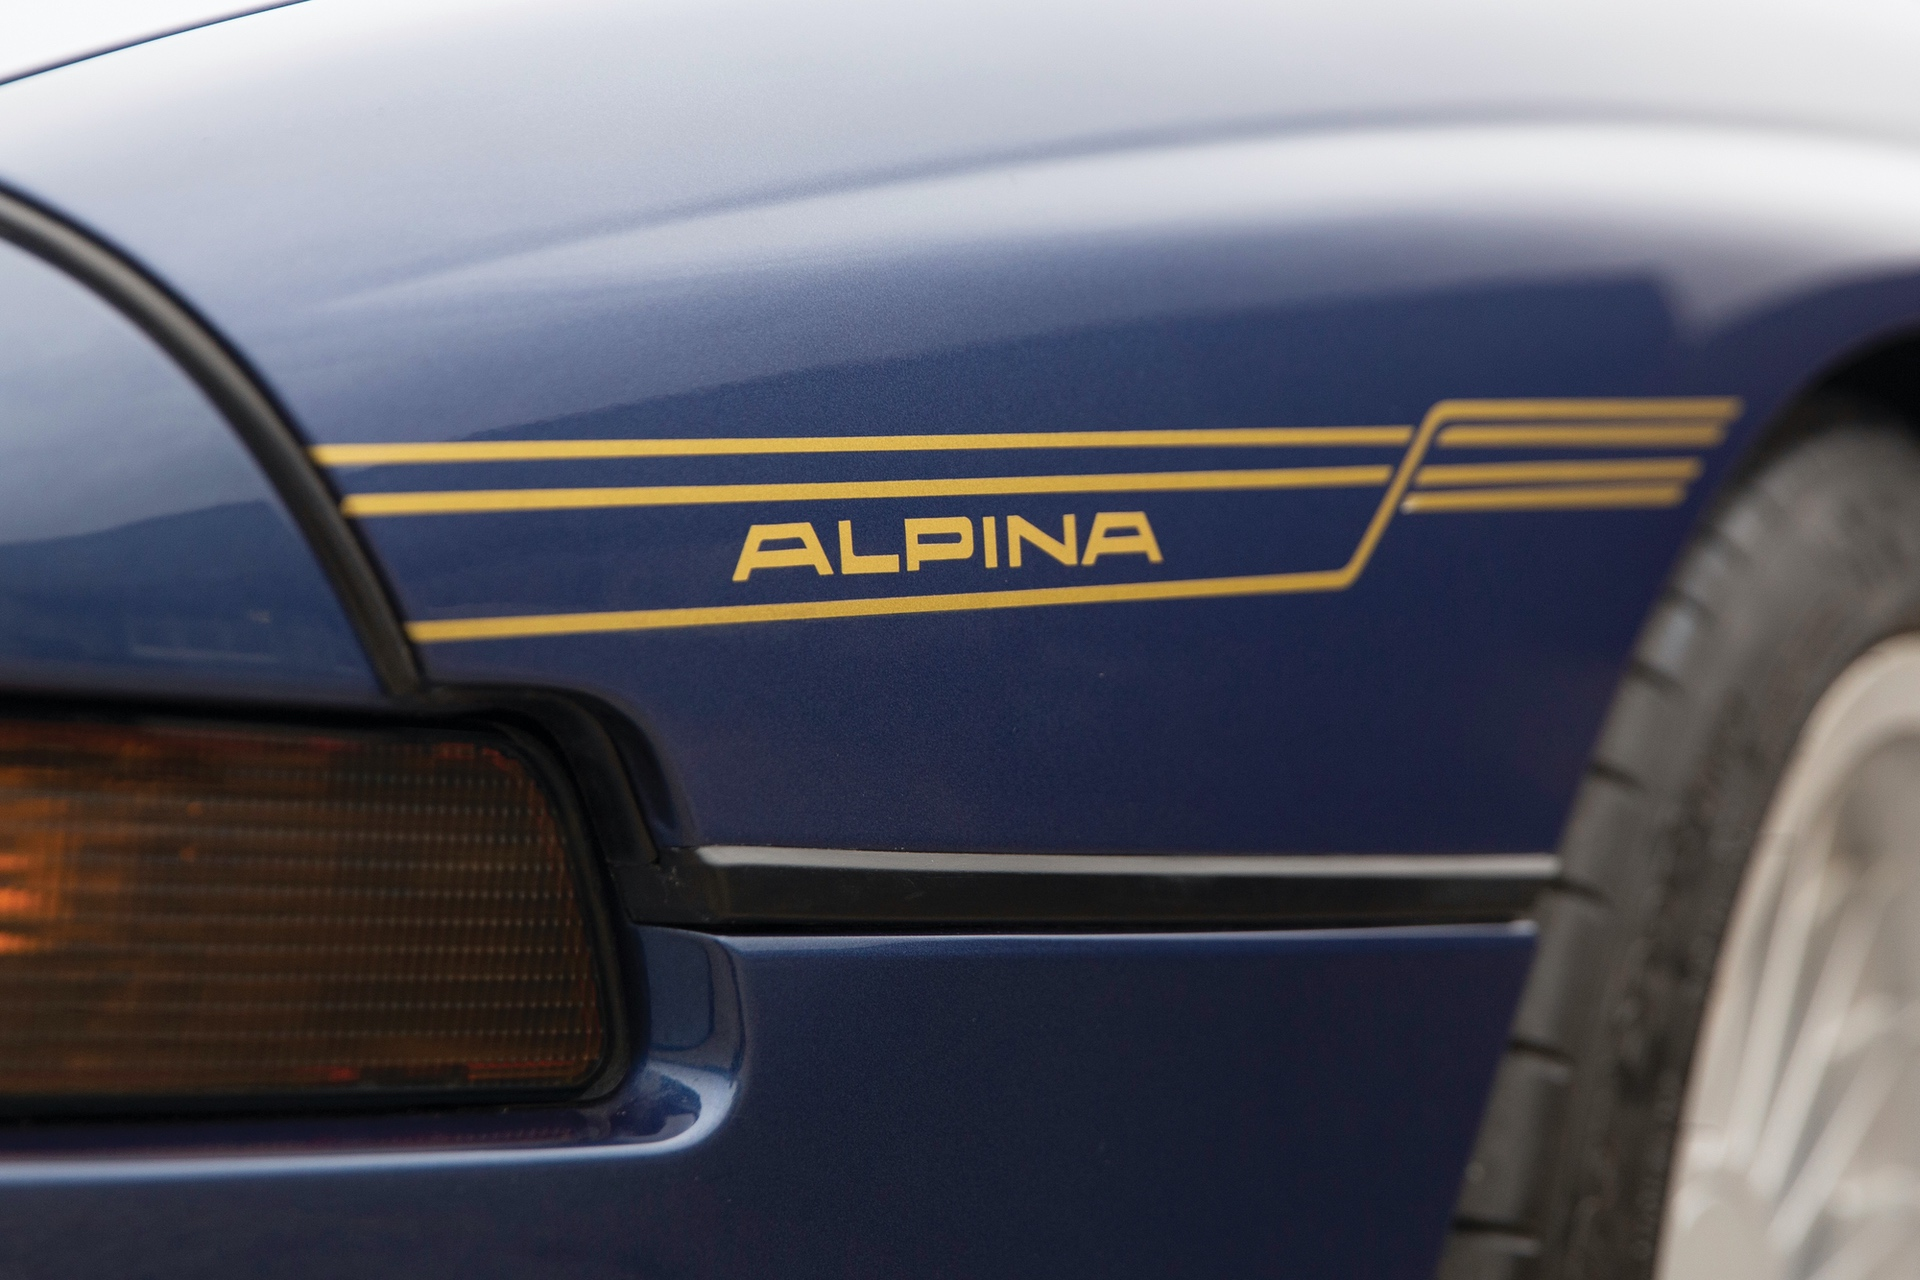 1993-BMW-Alpina-B12-5-7-Coupe-_6